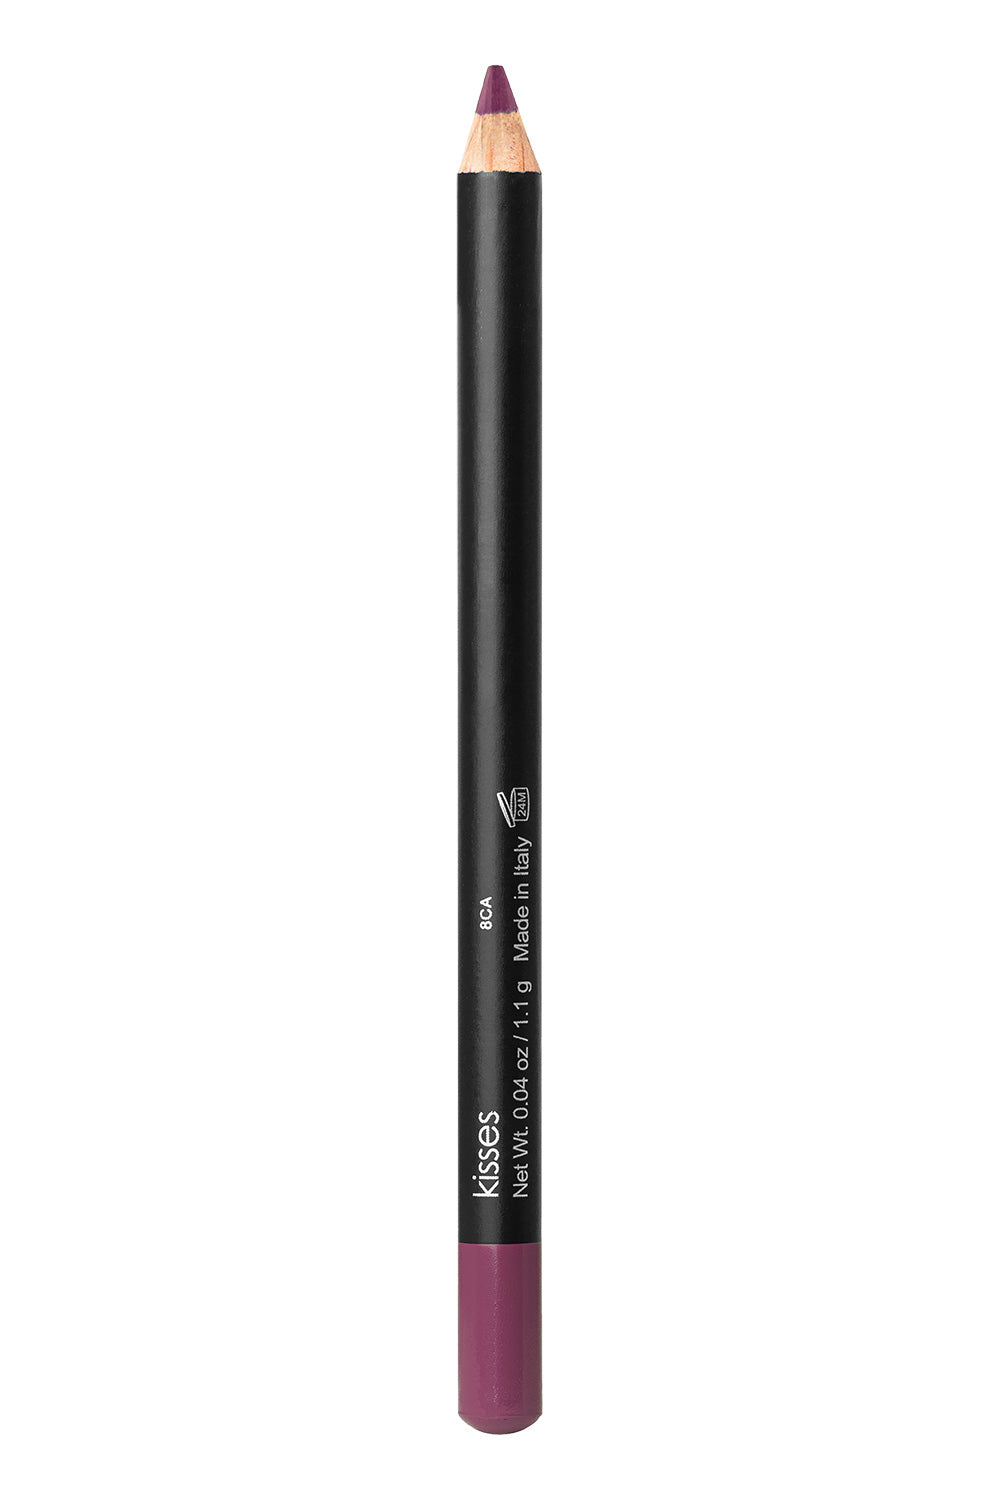 Kisses - Type 2 Lip Liner